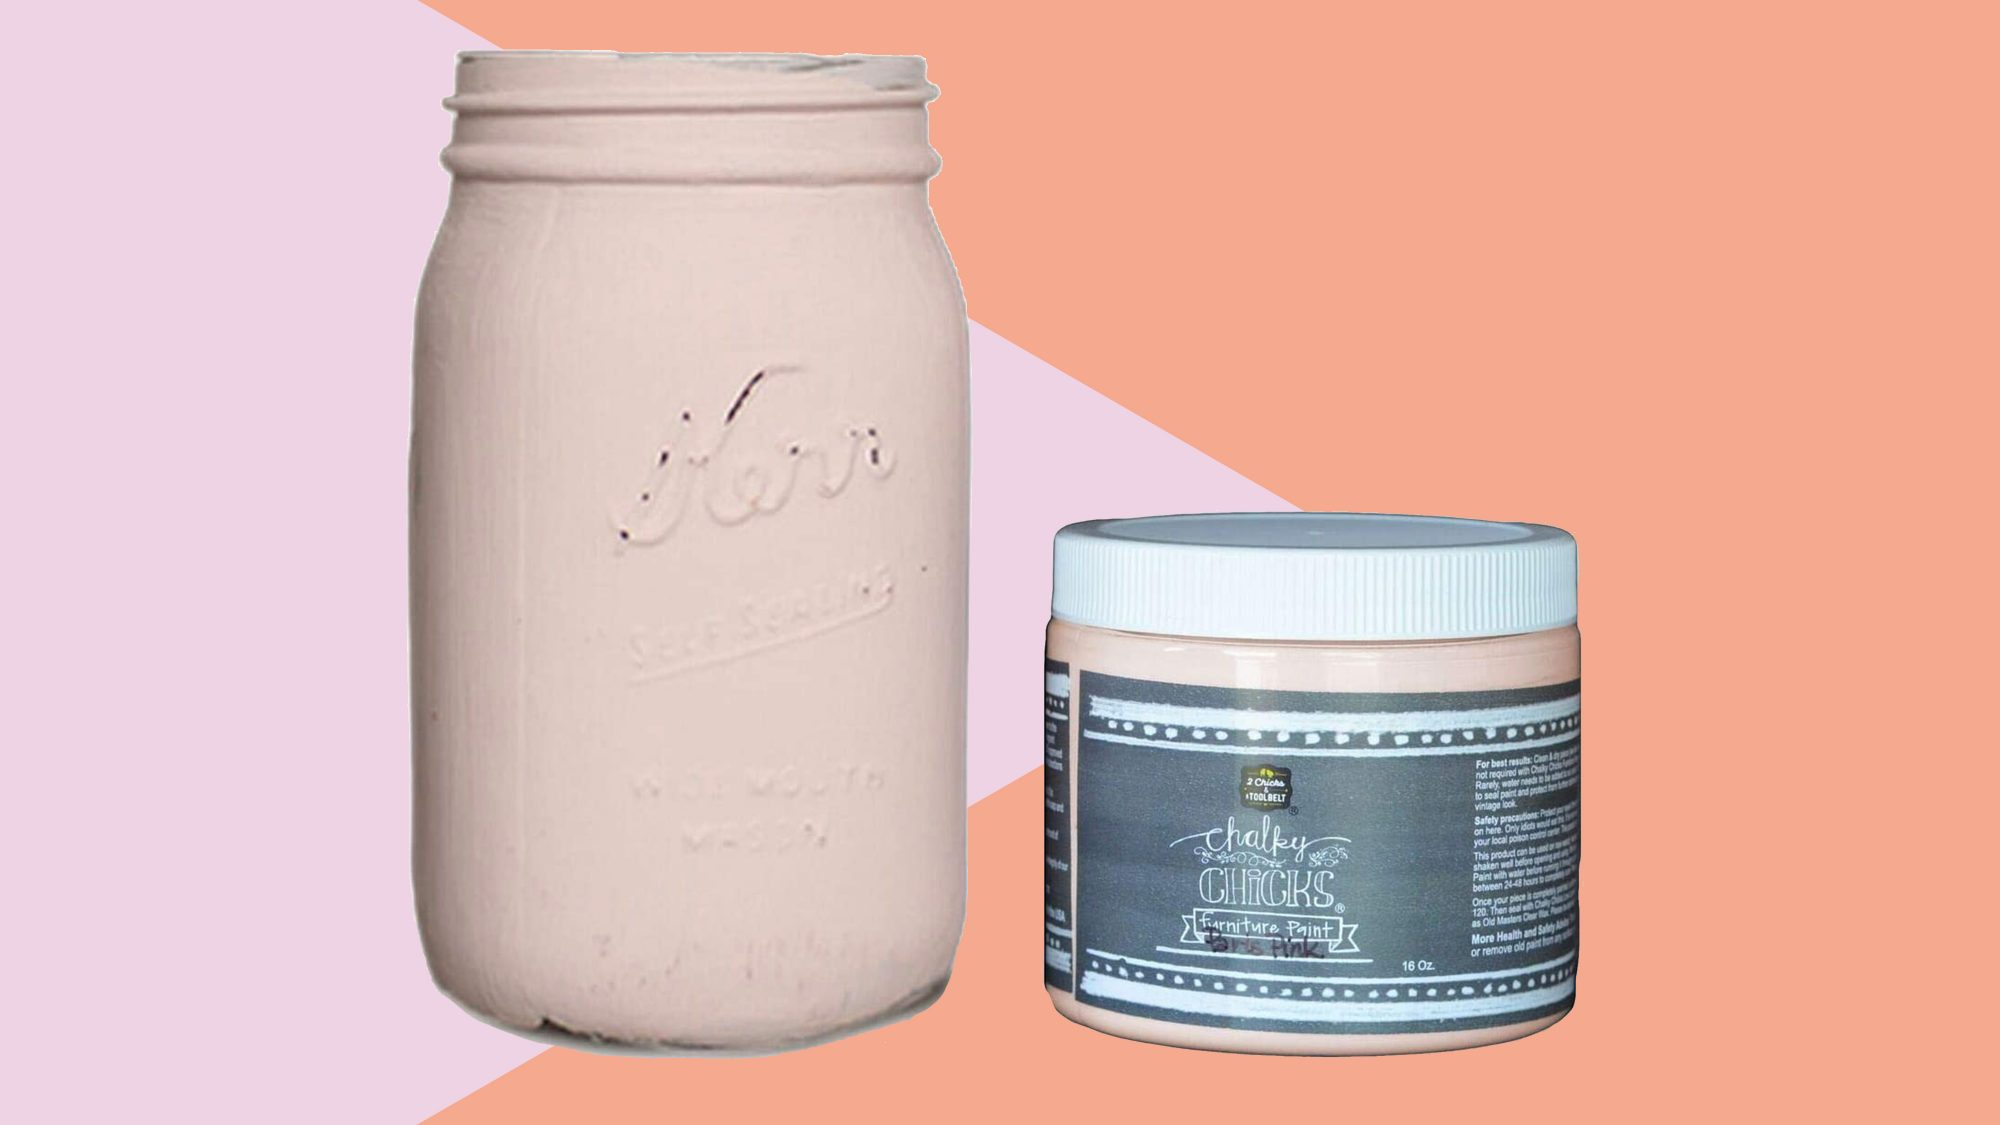 Chalky Chicks Chalk Finish Paint